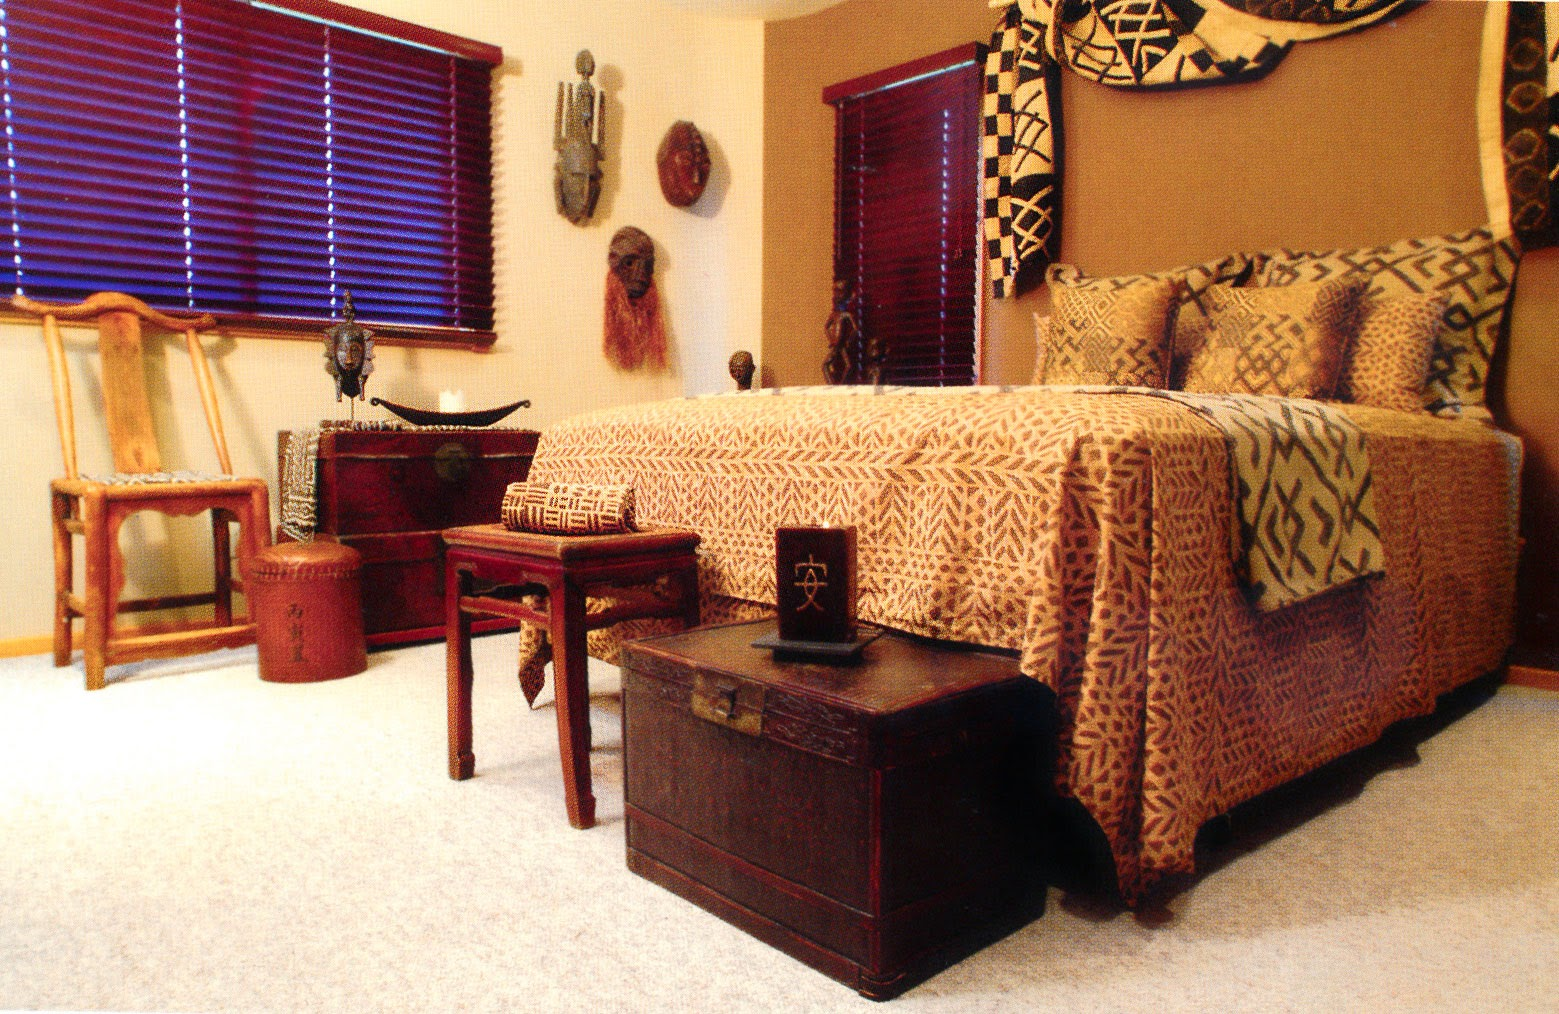 Foundation Dezin & Decor...: Bedroom Design - In African way.